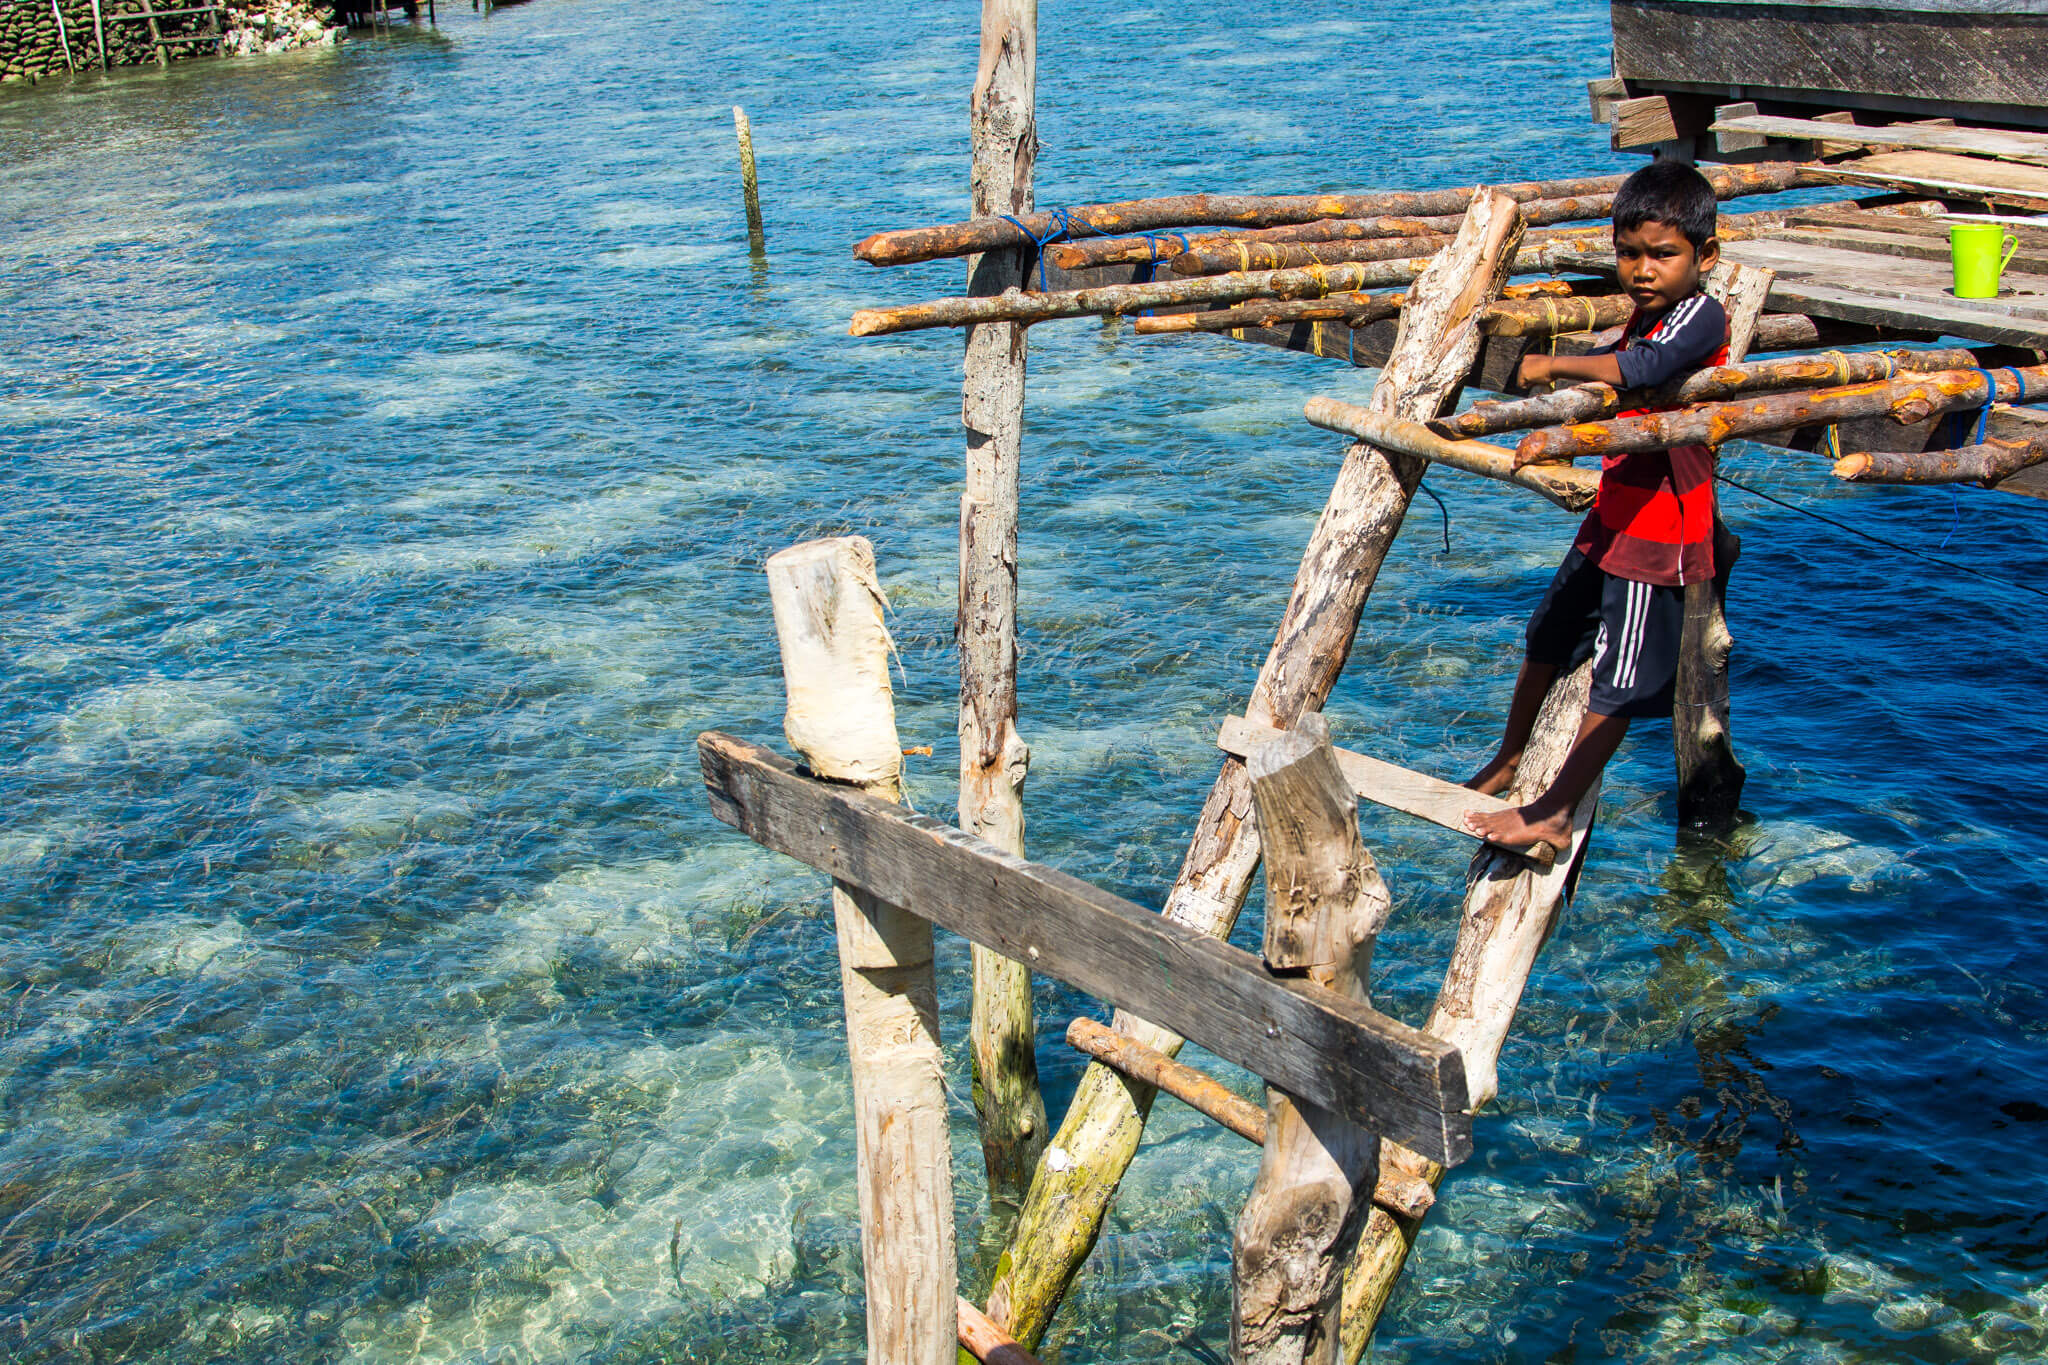 The Bajo People of Wakatobi, Indonesia